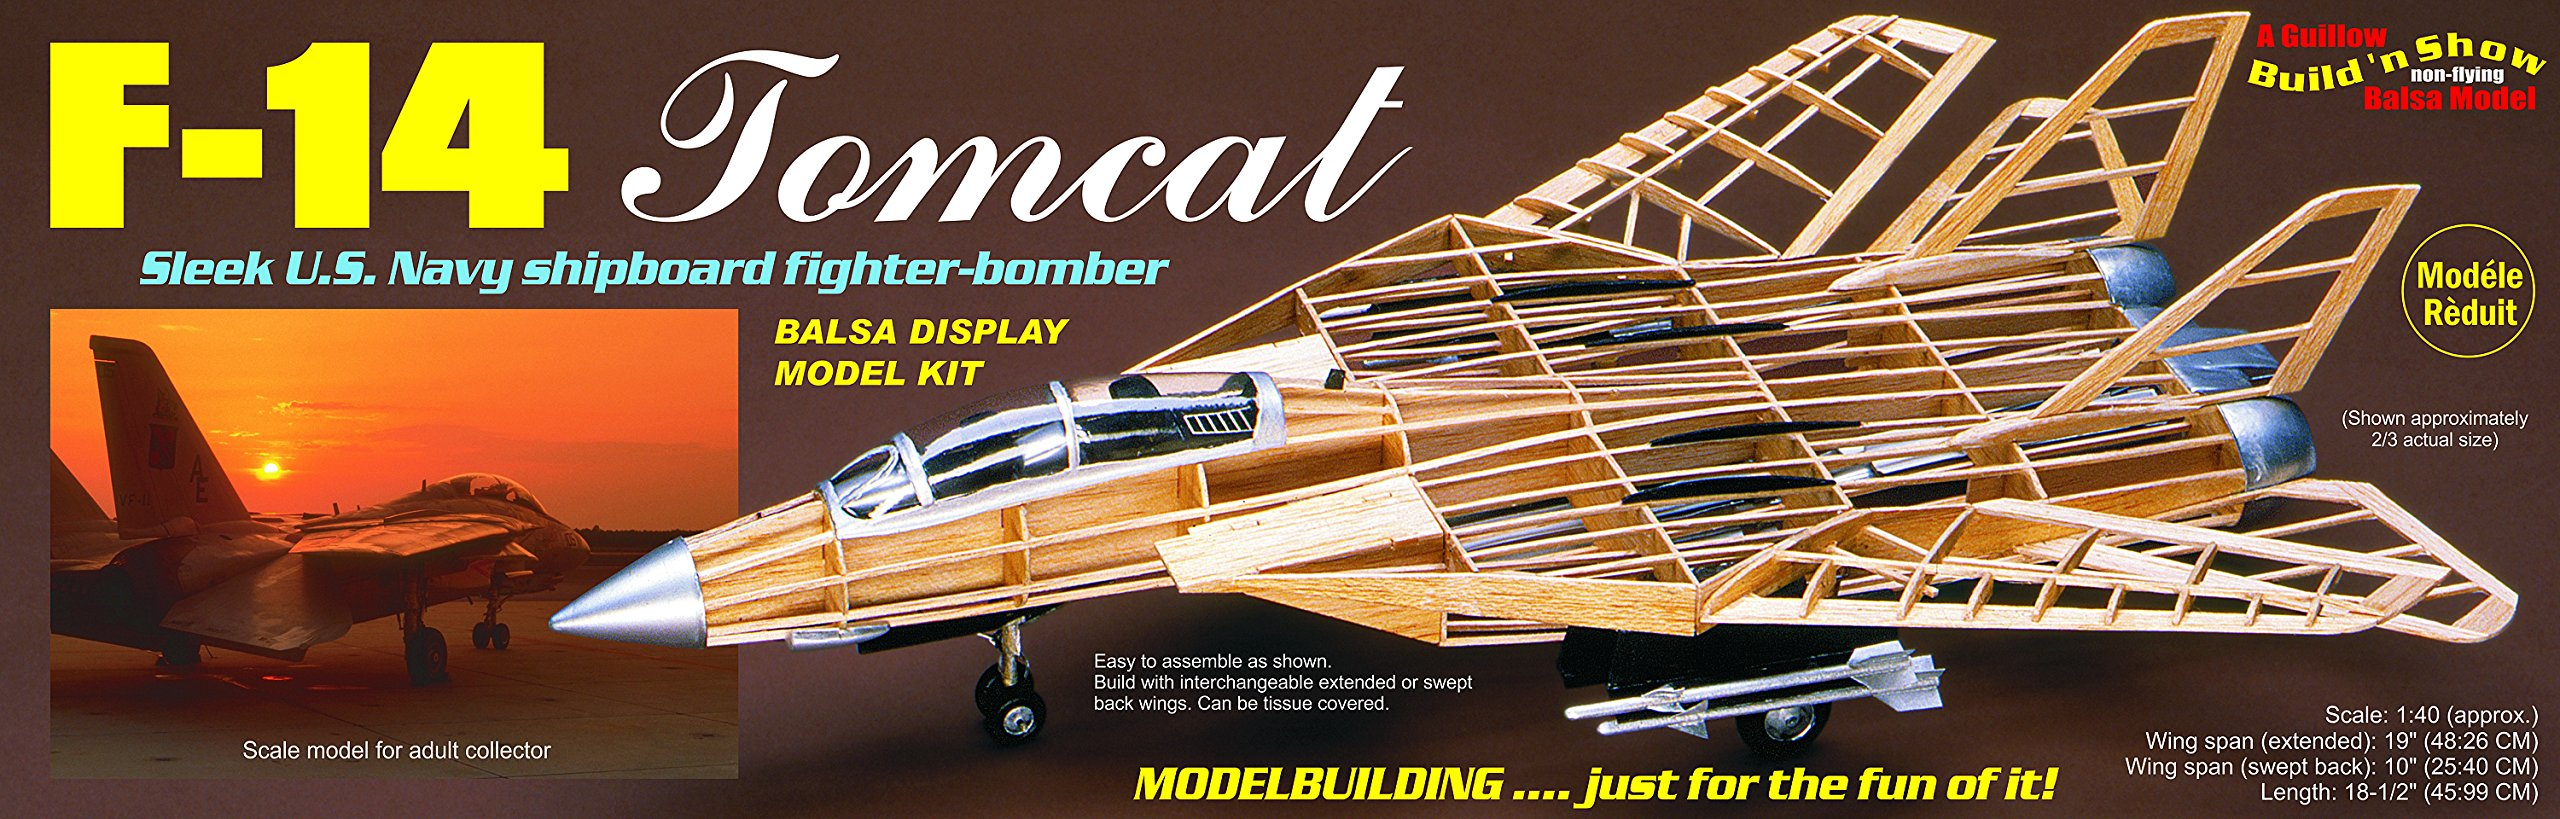 Guillow's F-14 Tomcat Model Kit by Guillow